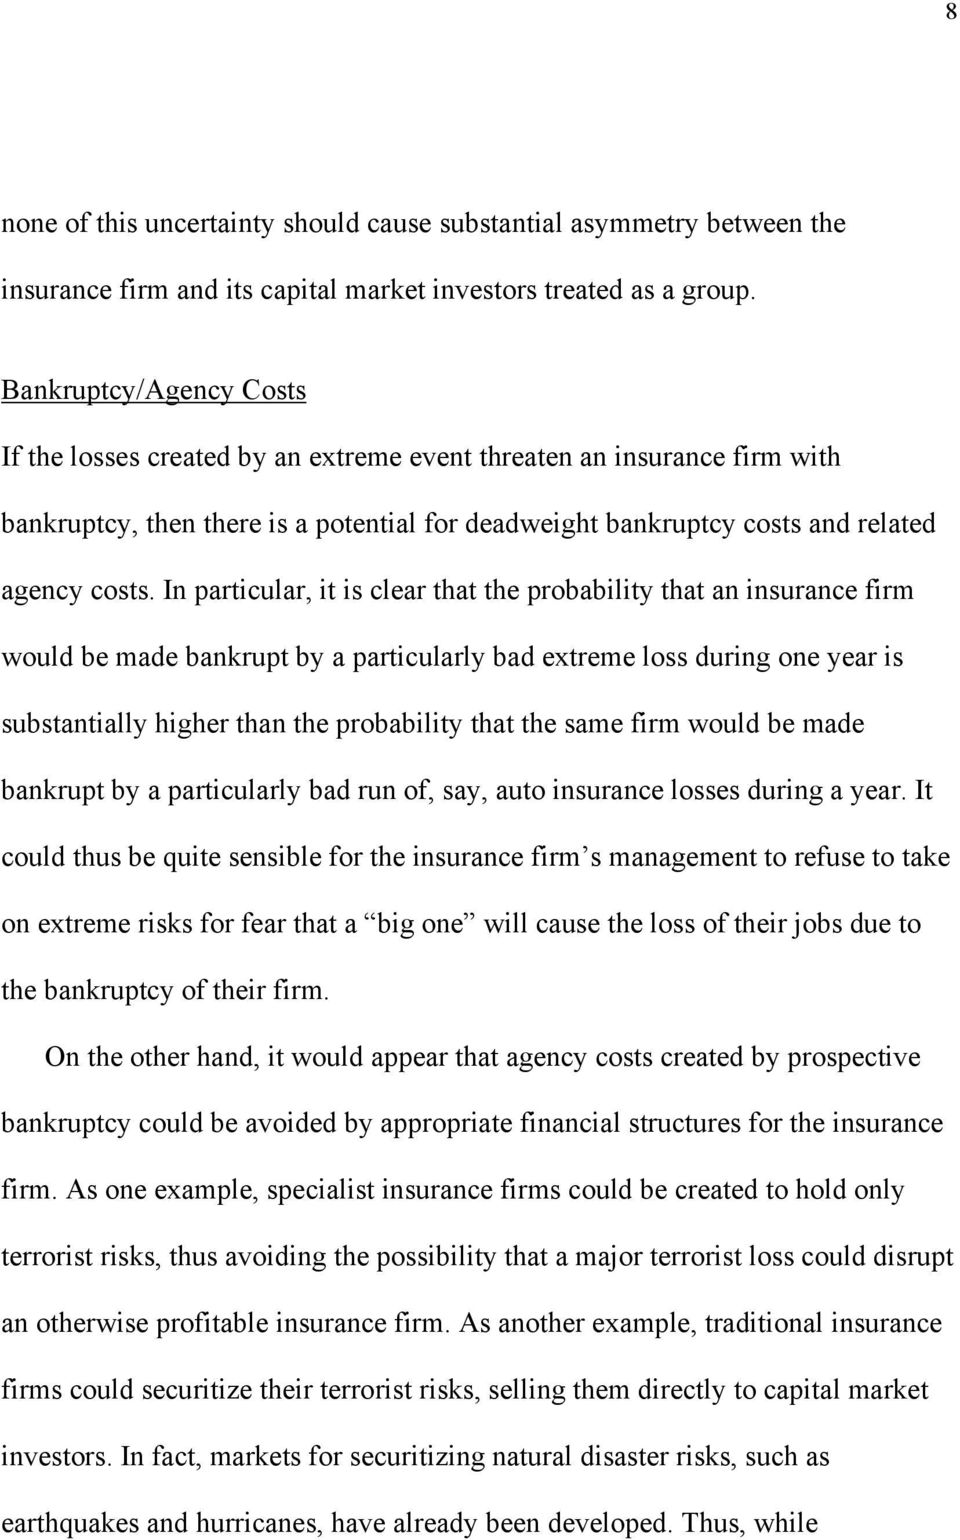 In particular, it is clear that the probability that an insurance firm would be made bankrupt by a particularly bad extreme loss during one year is substantially higher than the probability that the